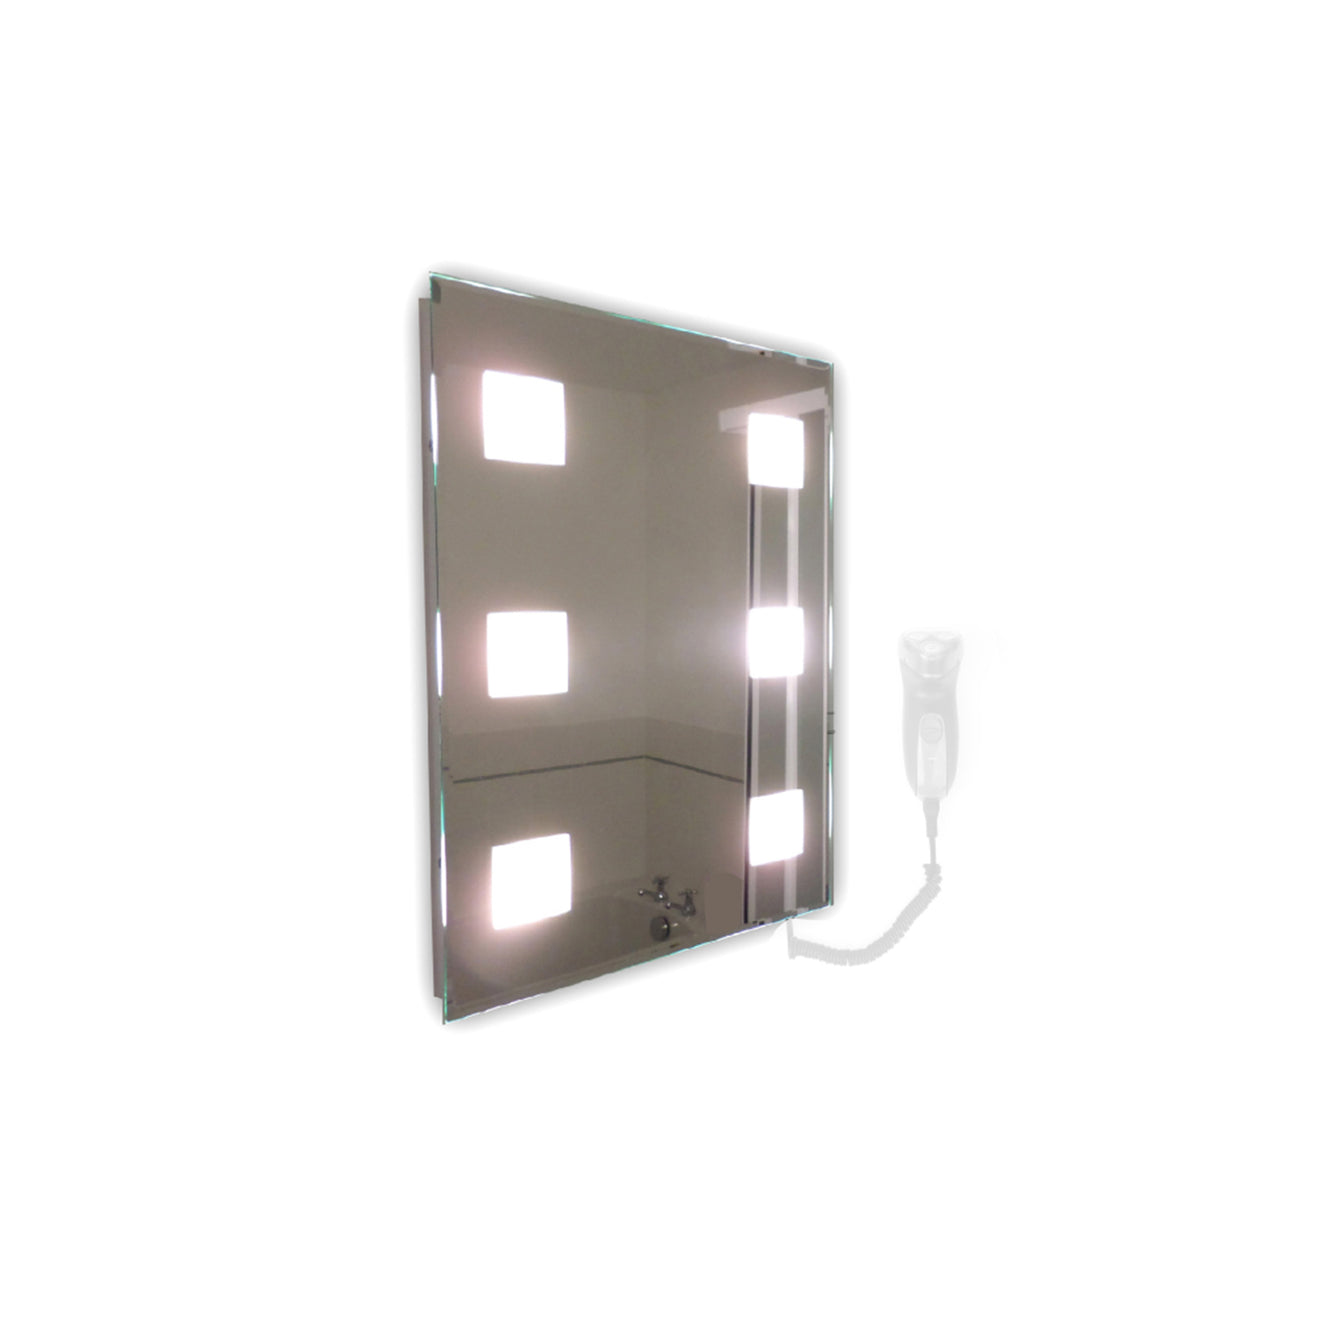 Snaresbrook Rectangular Mirror LED Light - Buy It Better Landscape